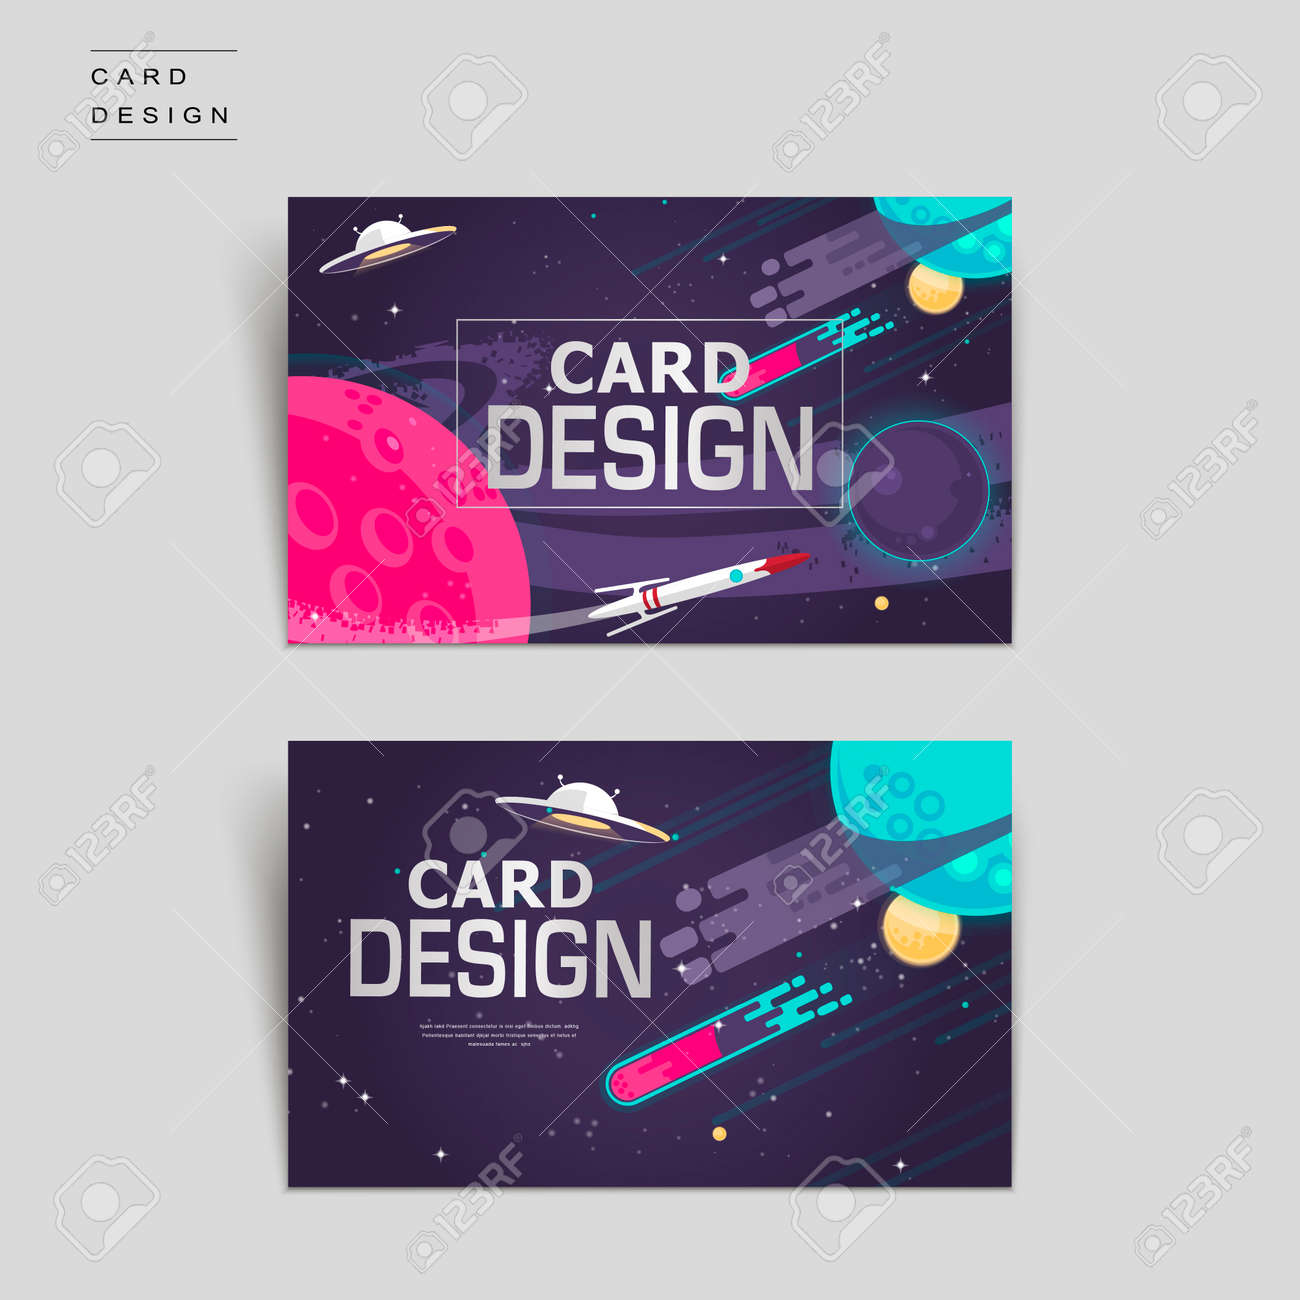 Cartoon business card template design with outer space scenery cartoon business card template design with outer space scenery stock vector 59995599 colourmoves Image collections